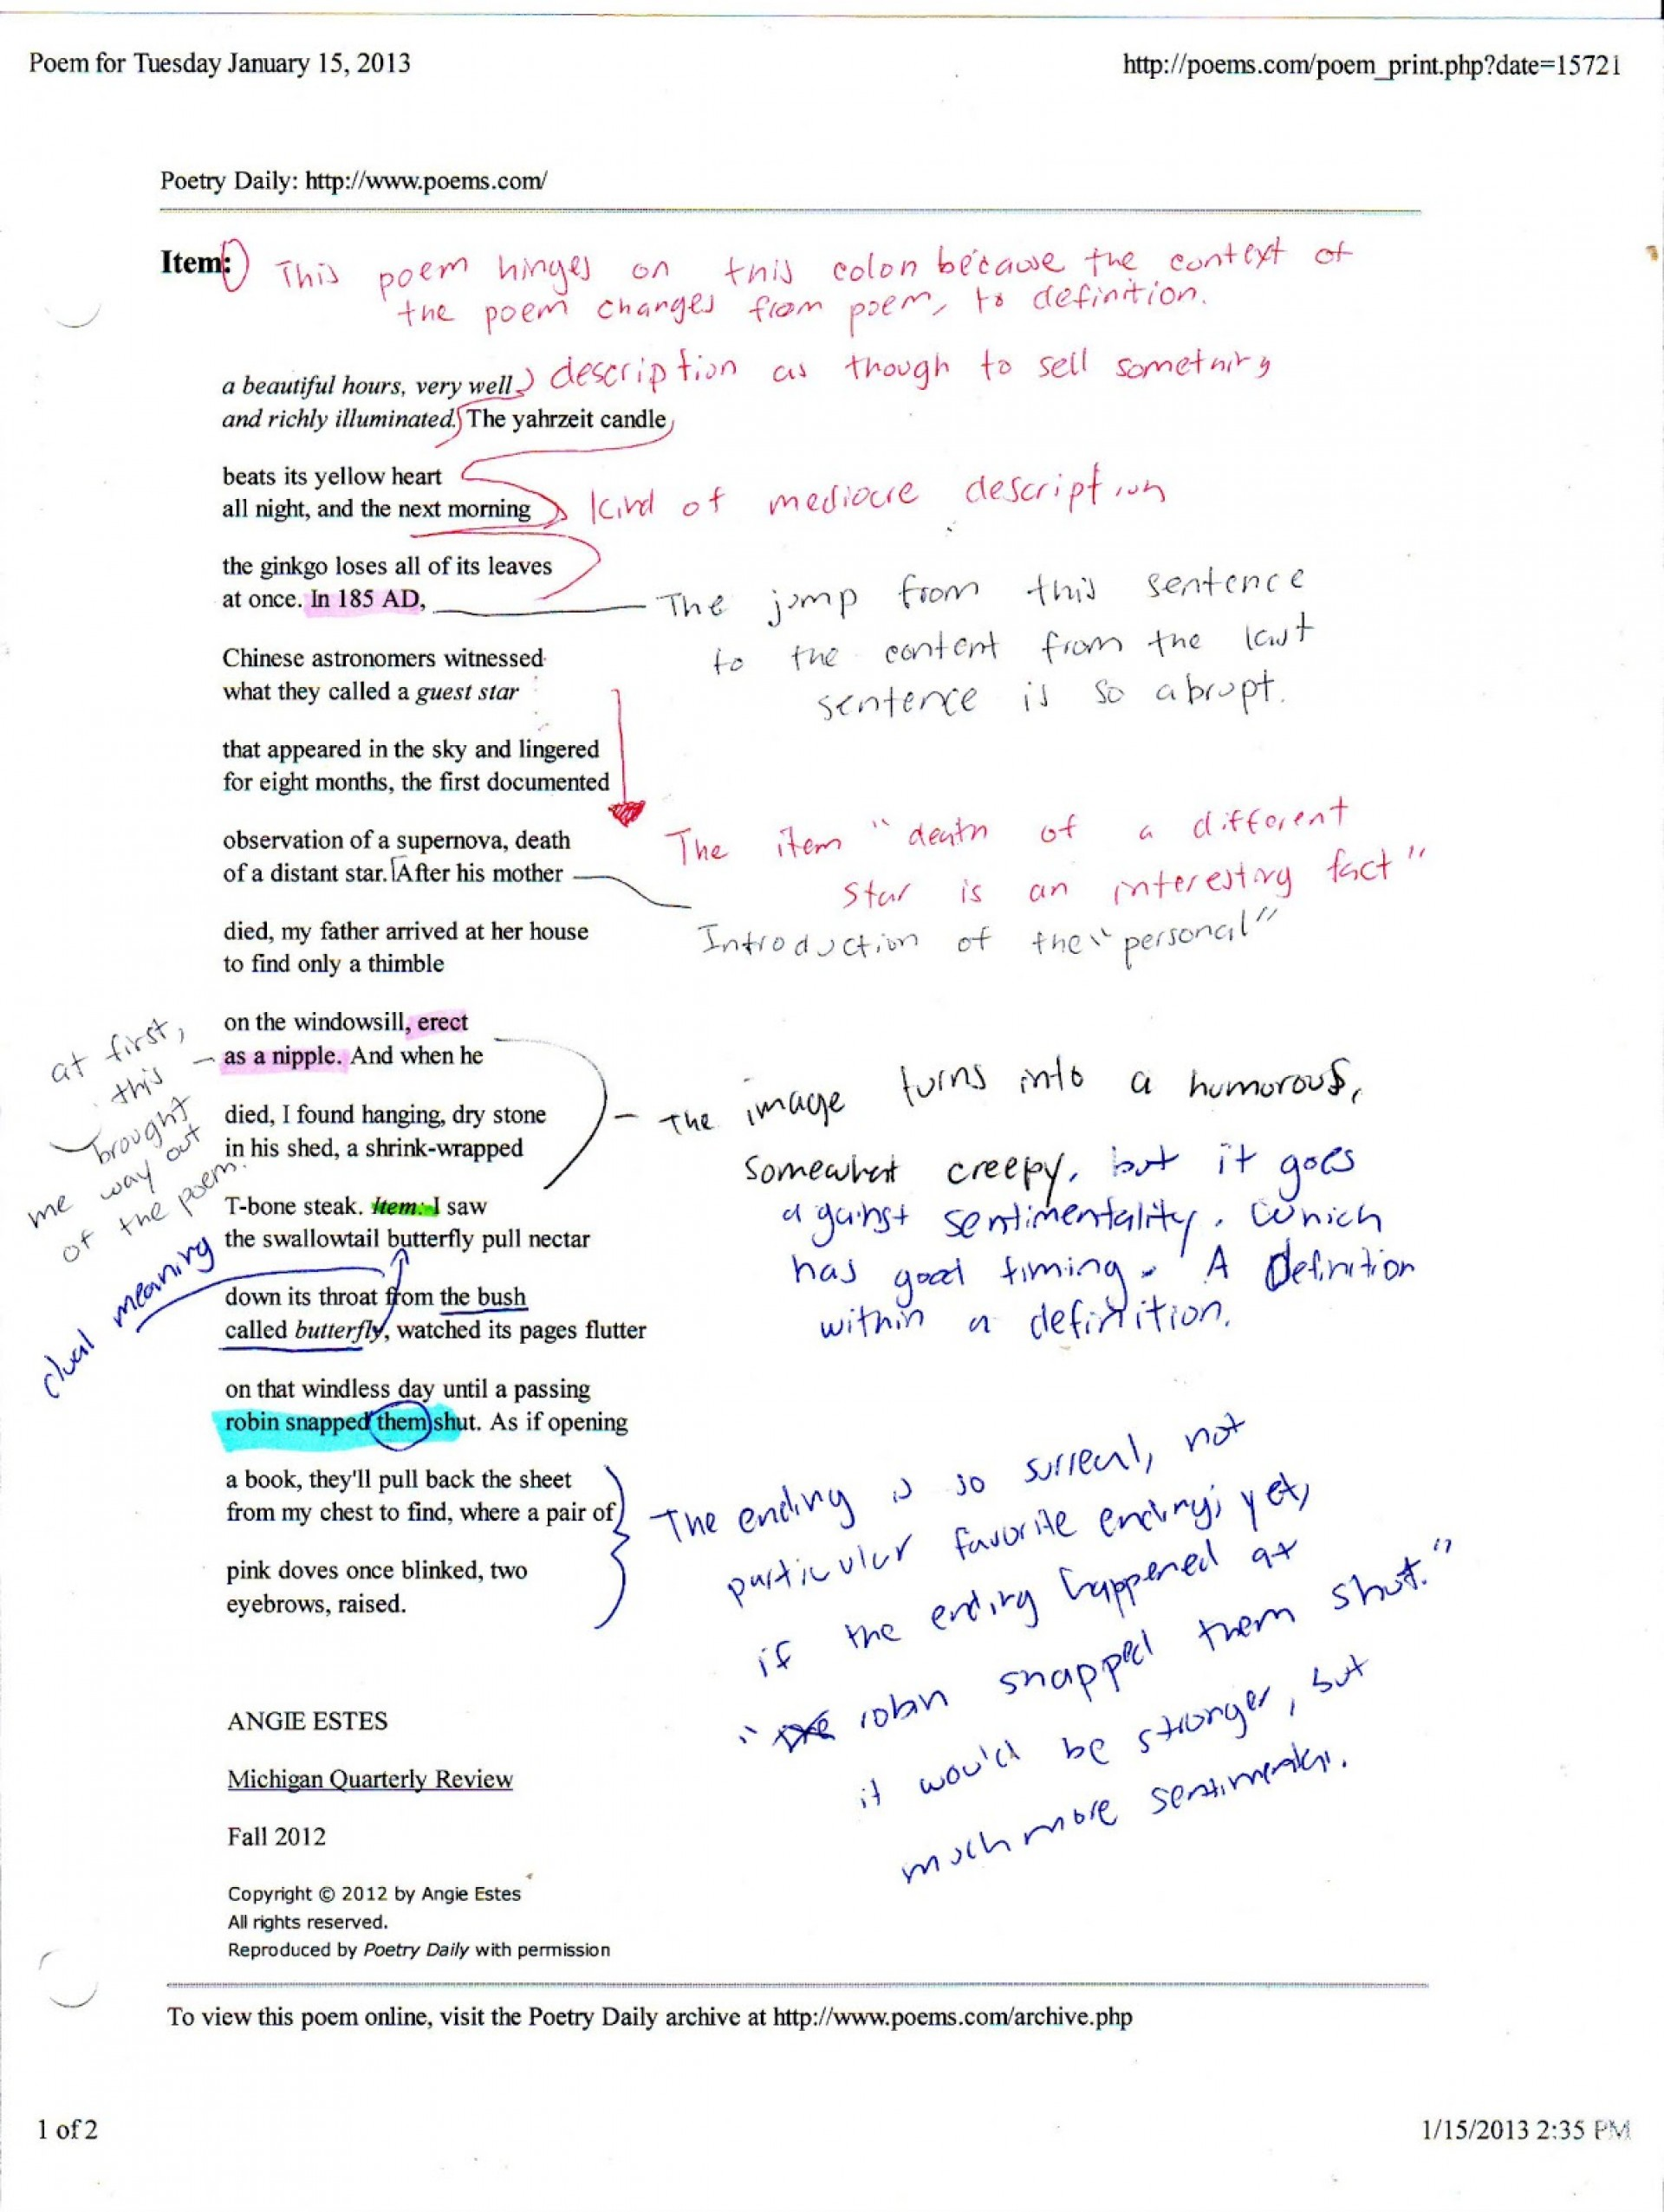 023 Essay Example Image70131 Jpg How To Quote Poem In Best A An Lines From Mla Chicago Style 1920